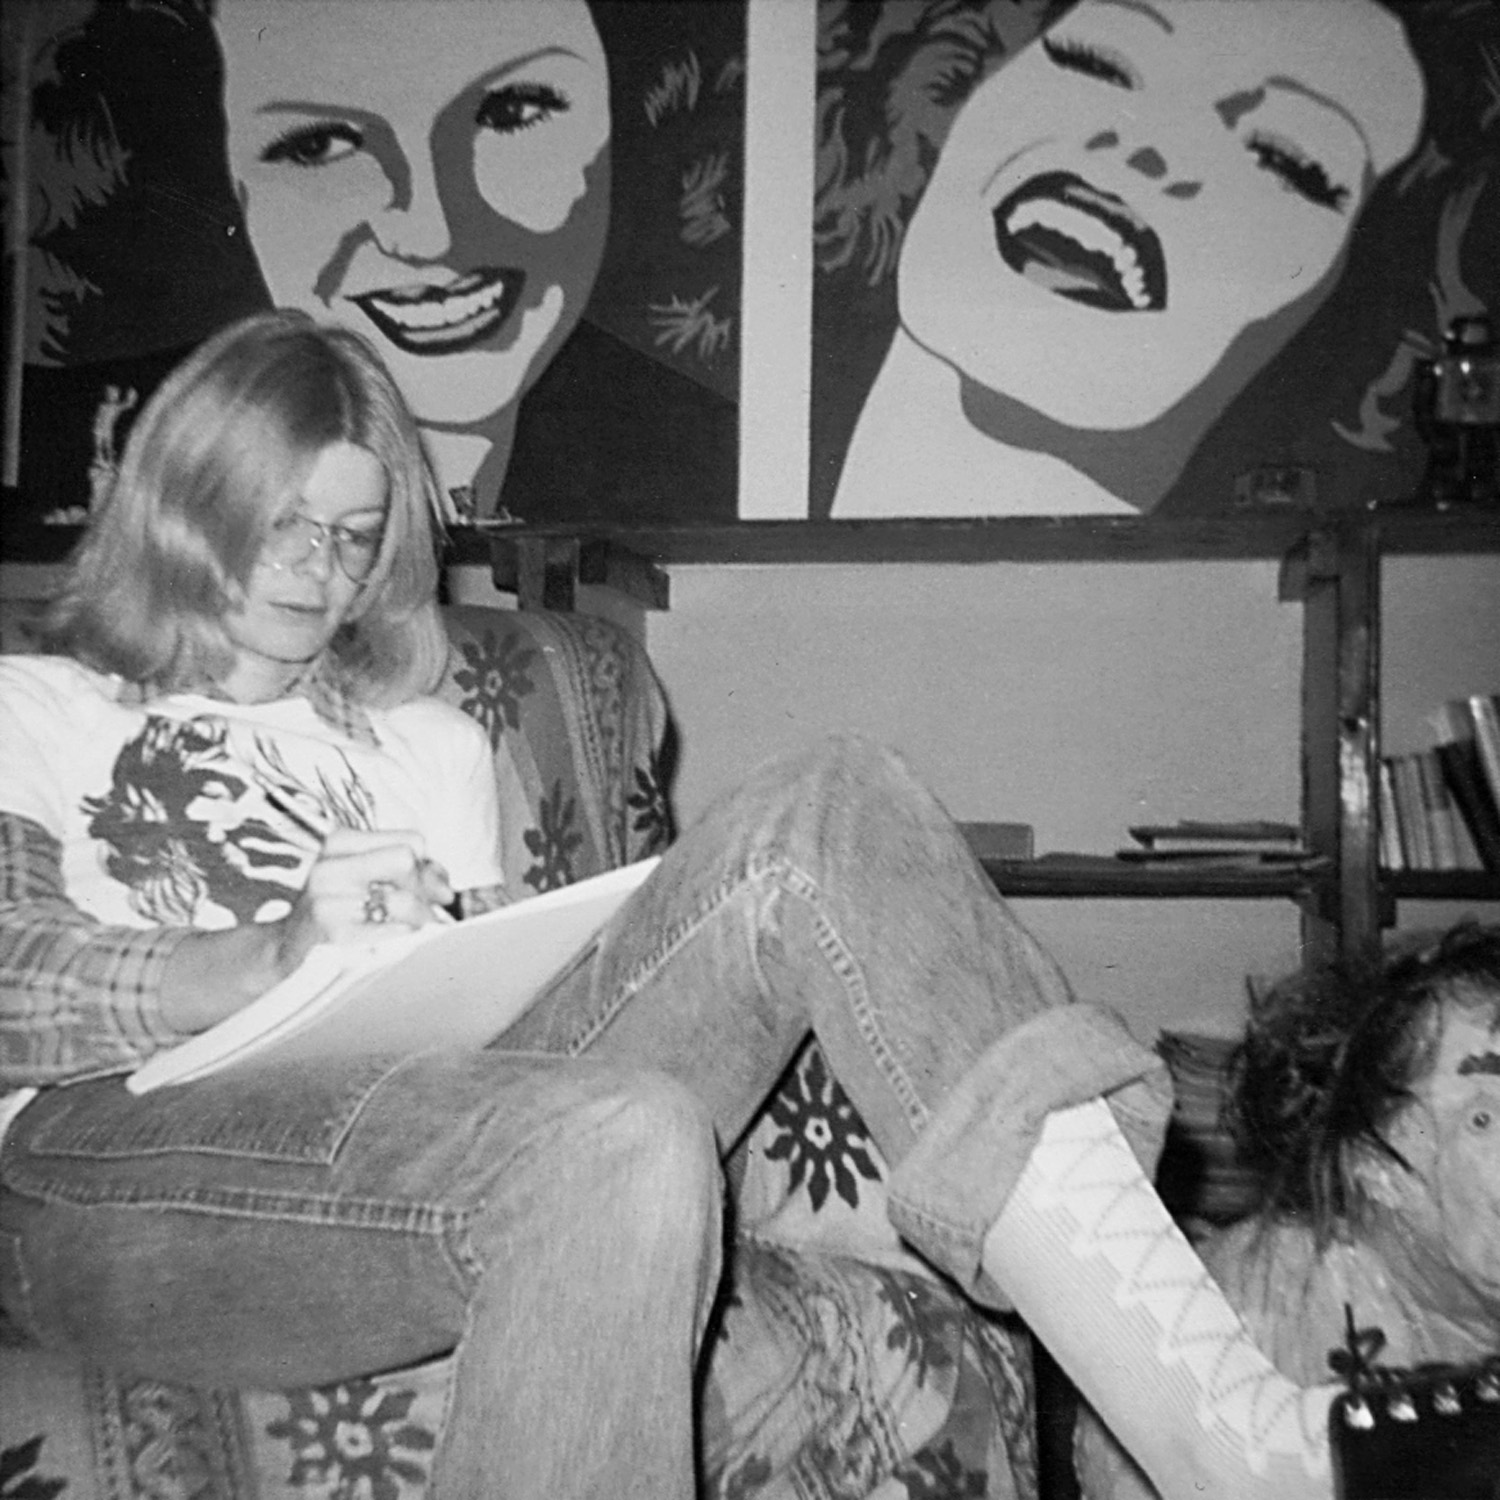 Carla at 98 Bowery (her paintings of Rita Hayworth in the background), c. 1971